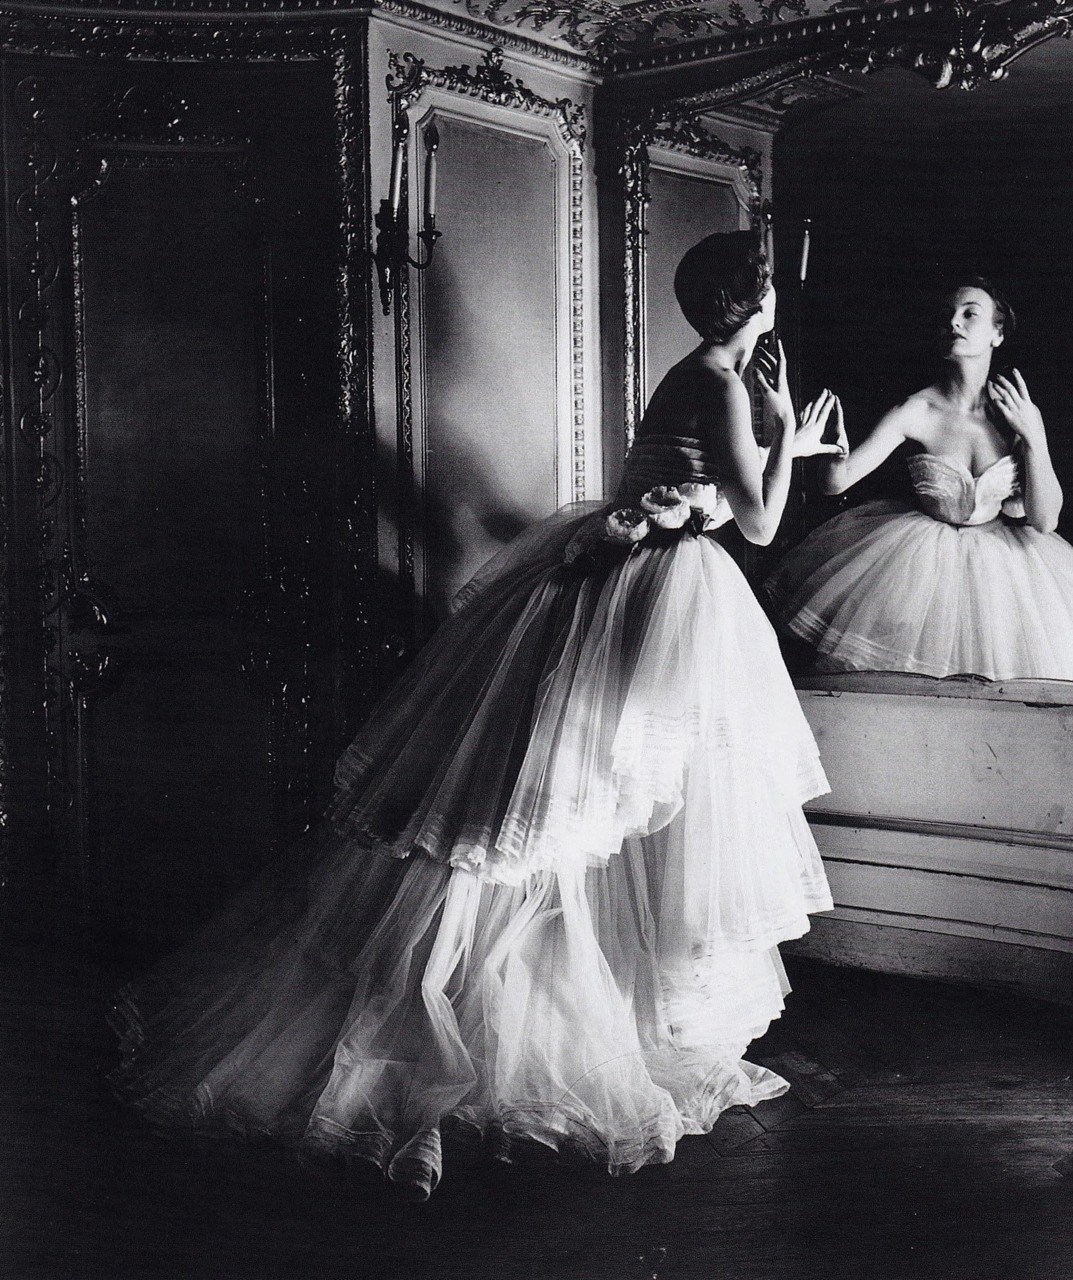 Mary Jane Russell in Dior, 1950Photographer: Louise Dahl-Wolfe